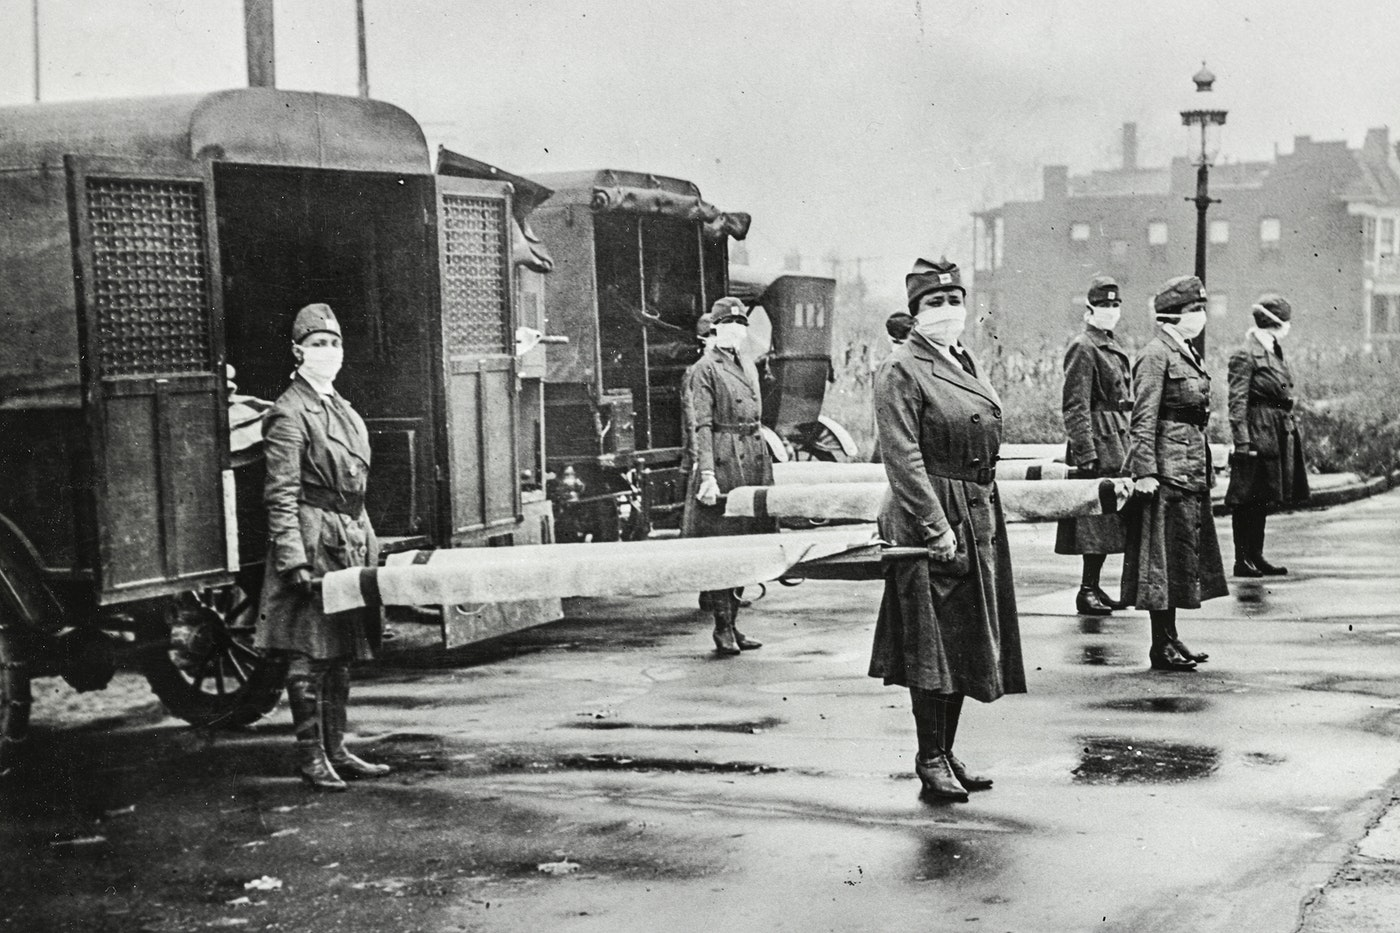 1918 influenza epidemic St. Louis Red Cross Motor Corps personnel wear masks as they hold stretchers next to ambulances in preparation for victims of the influenza epidemic in October 1918. (Library of Congress)